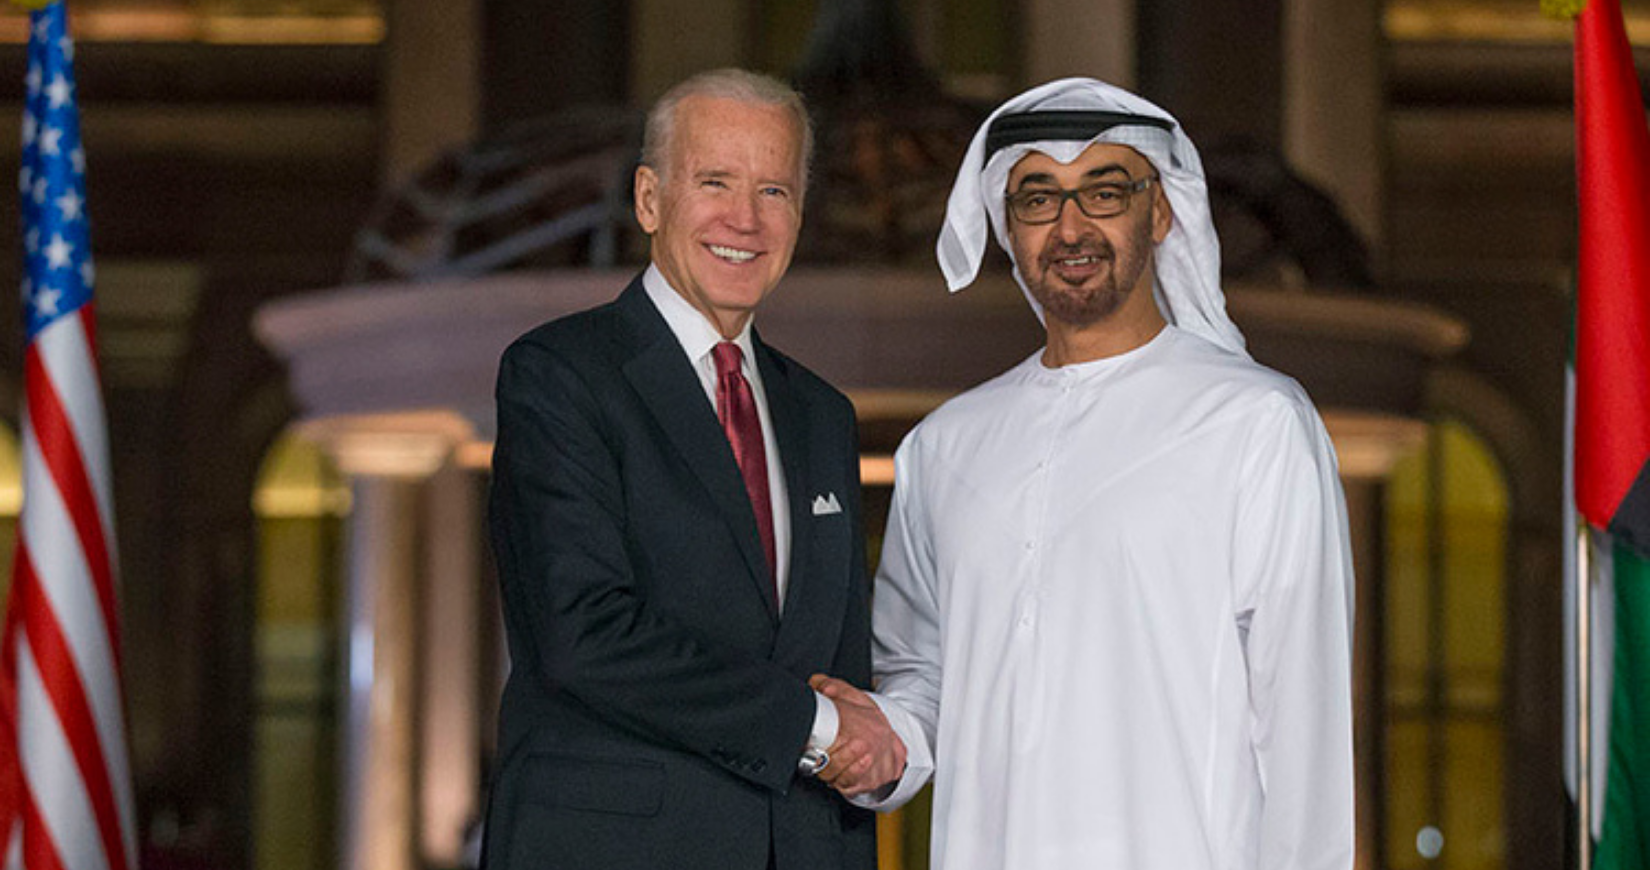 Joe biden Mohamed bin zayed